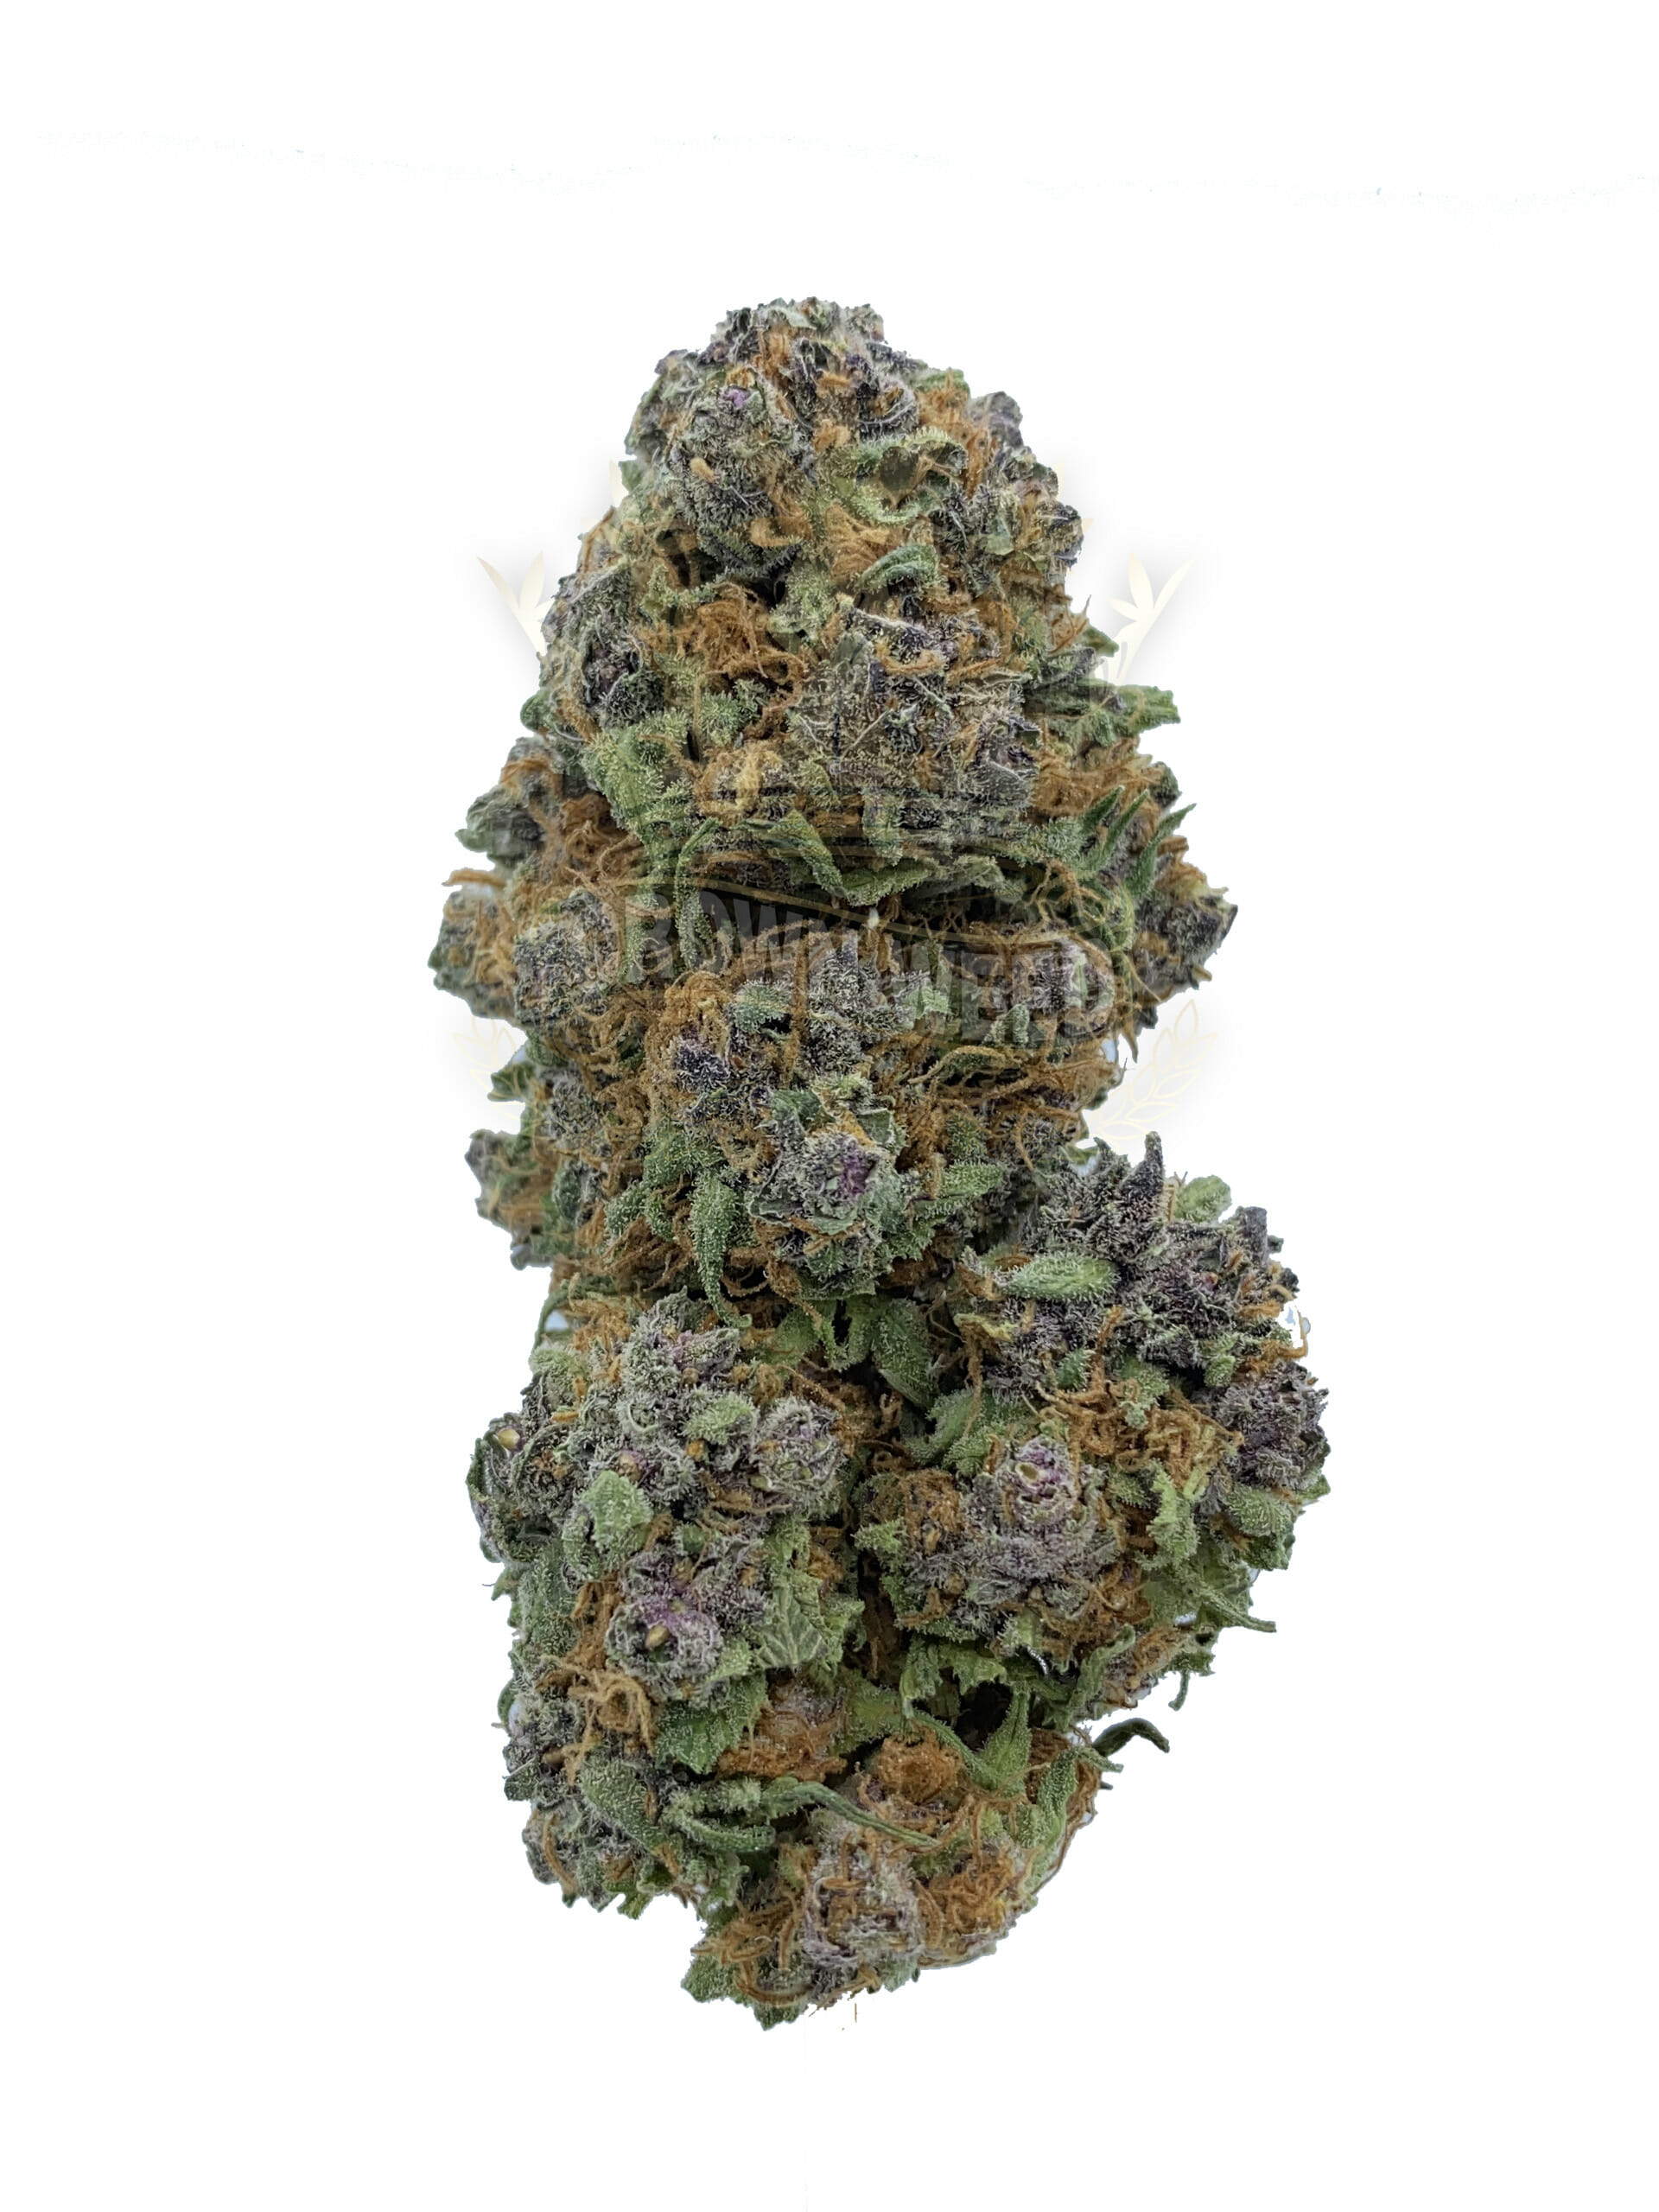 Acquire the necessary information about dispensary weed cannabis vapers.